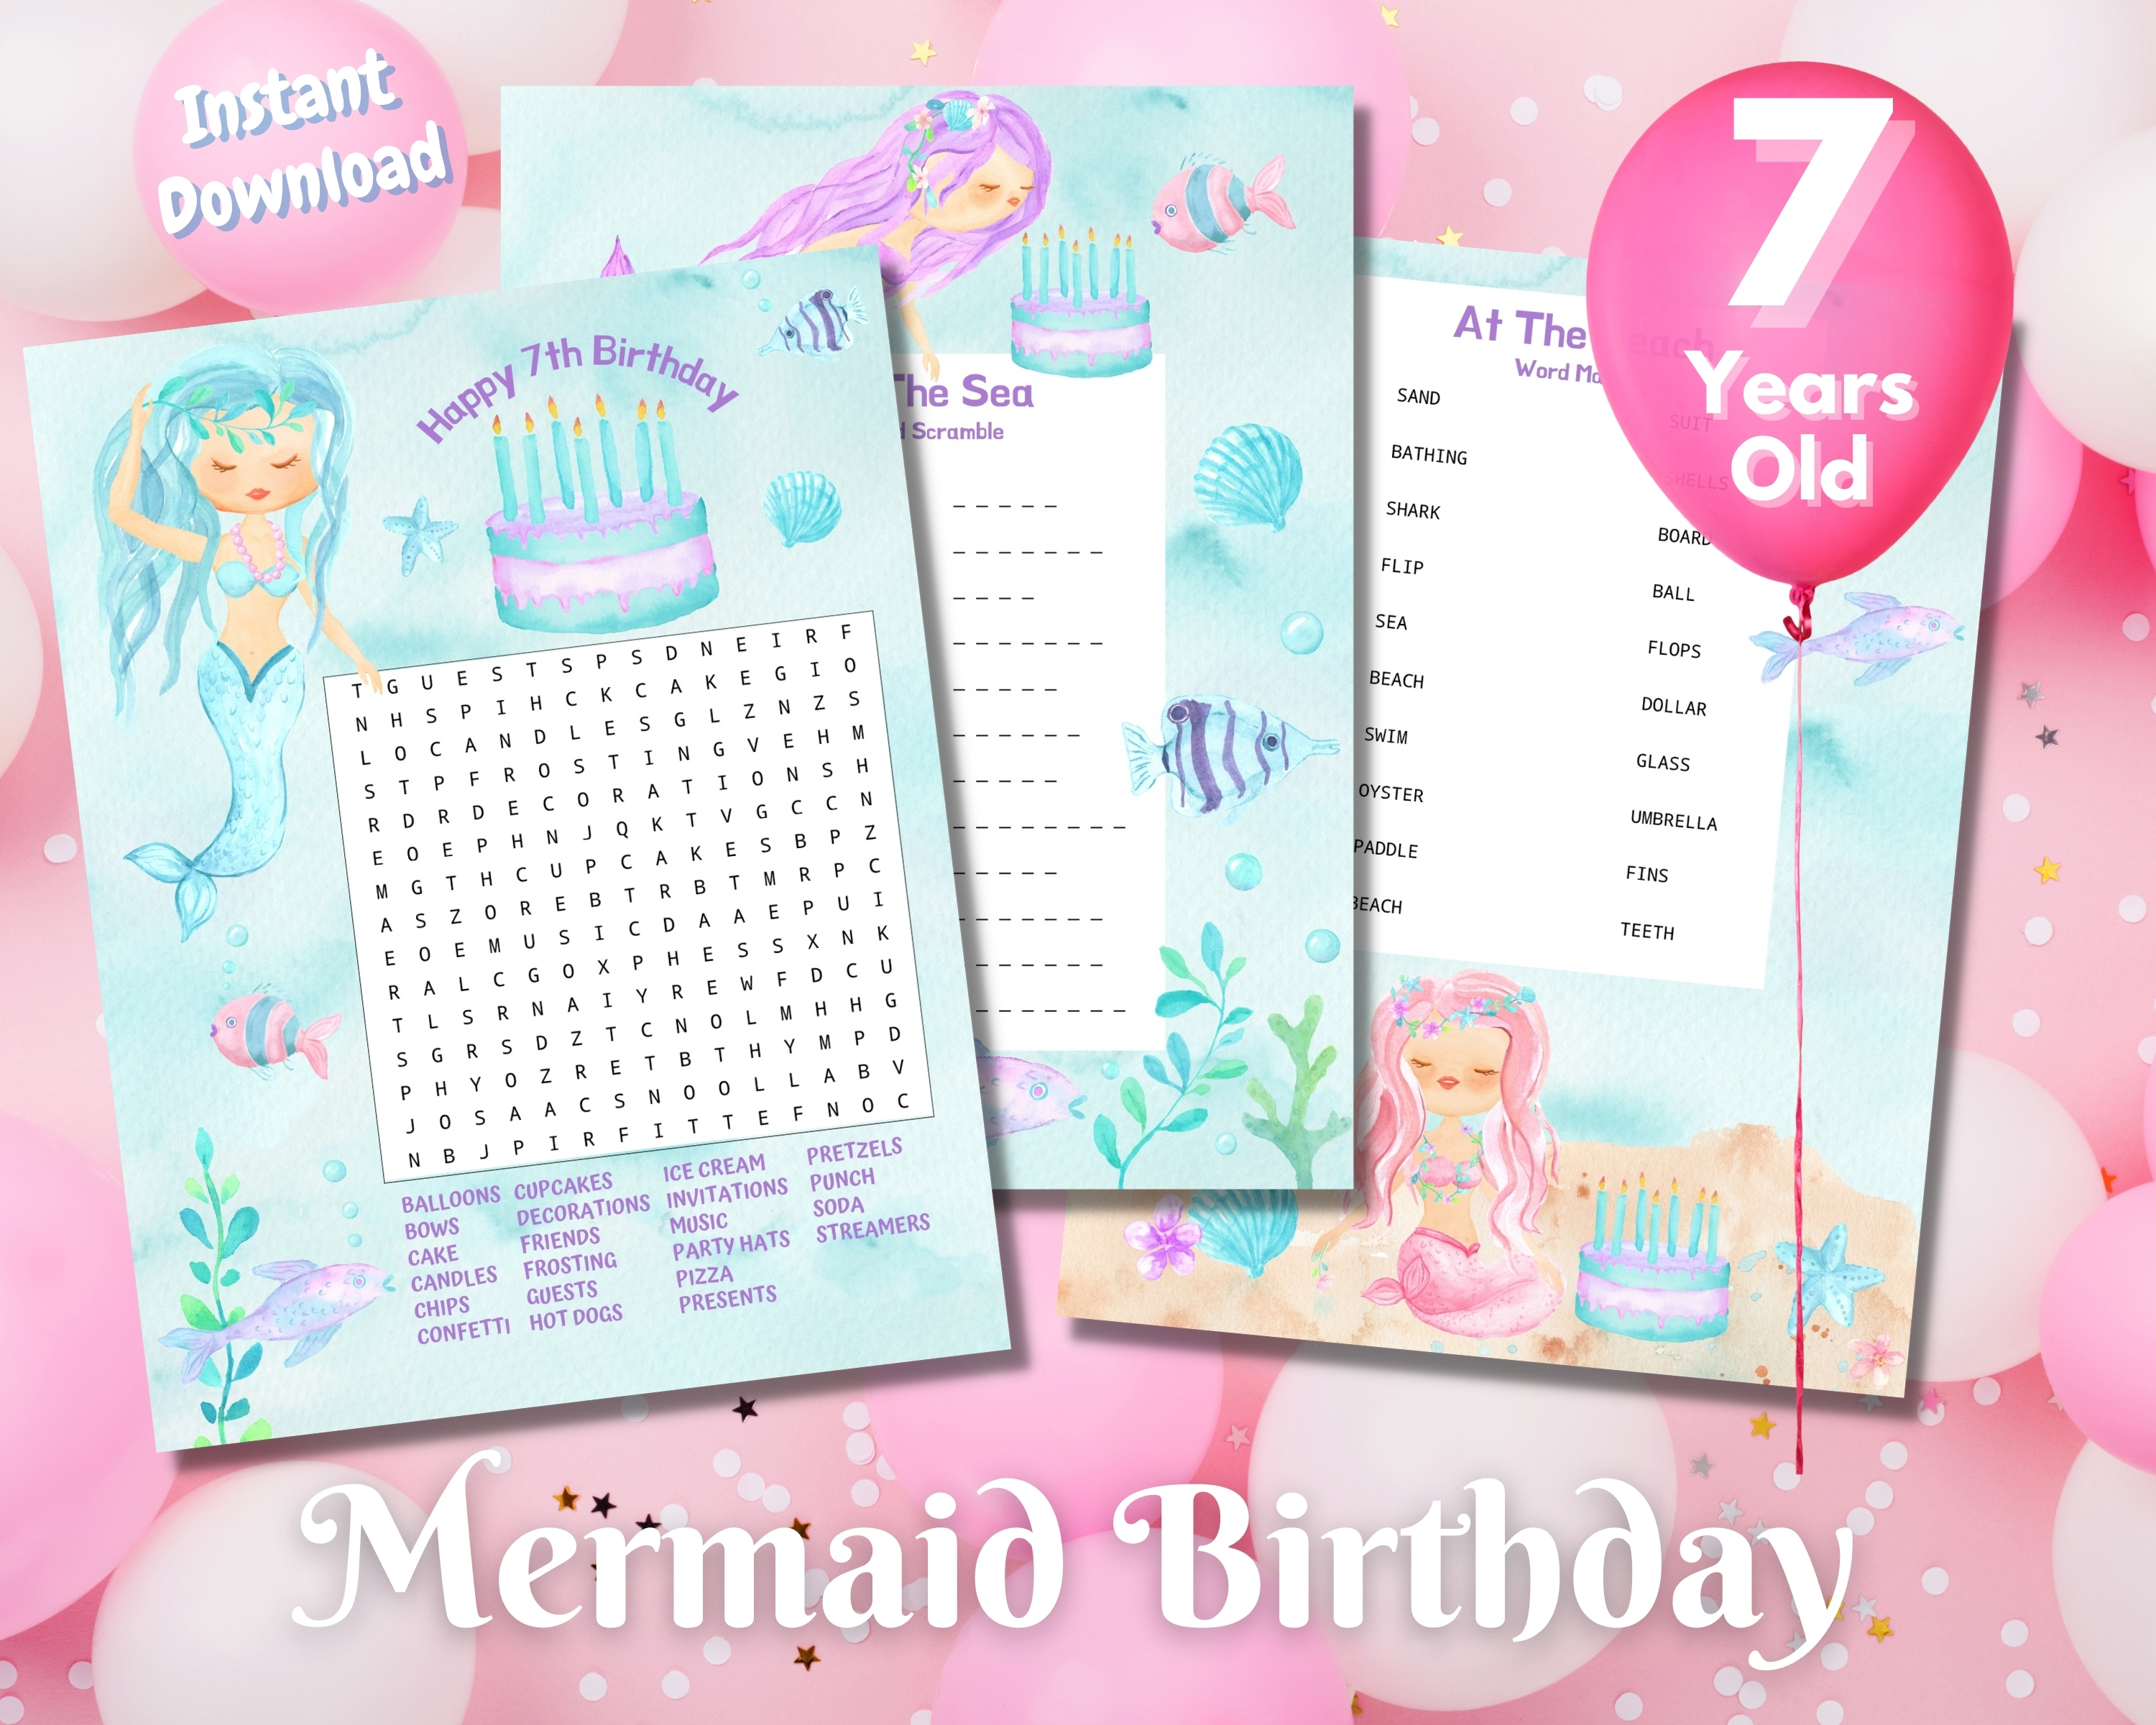 Seventh Mermaid Birthday Word Puzzles - Light Complexion